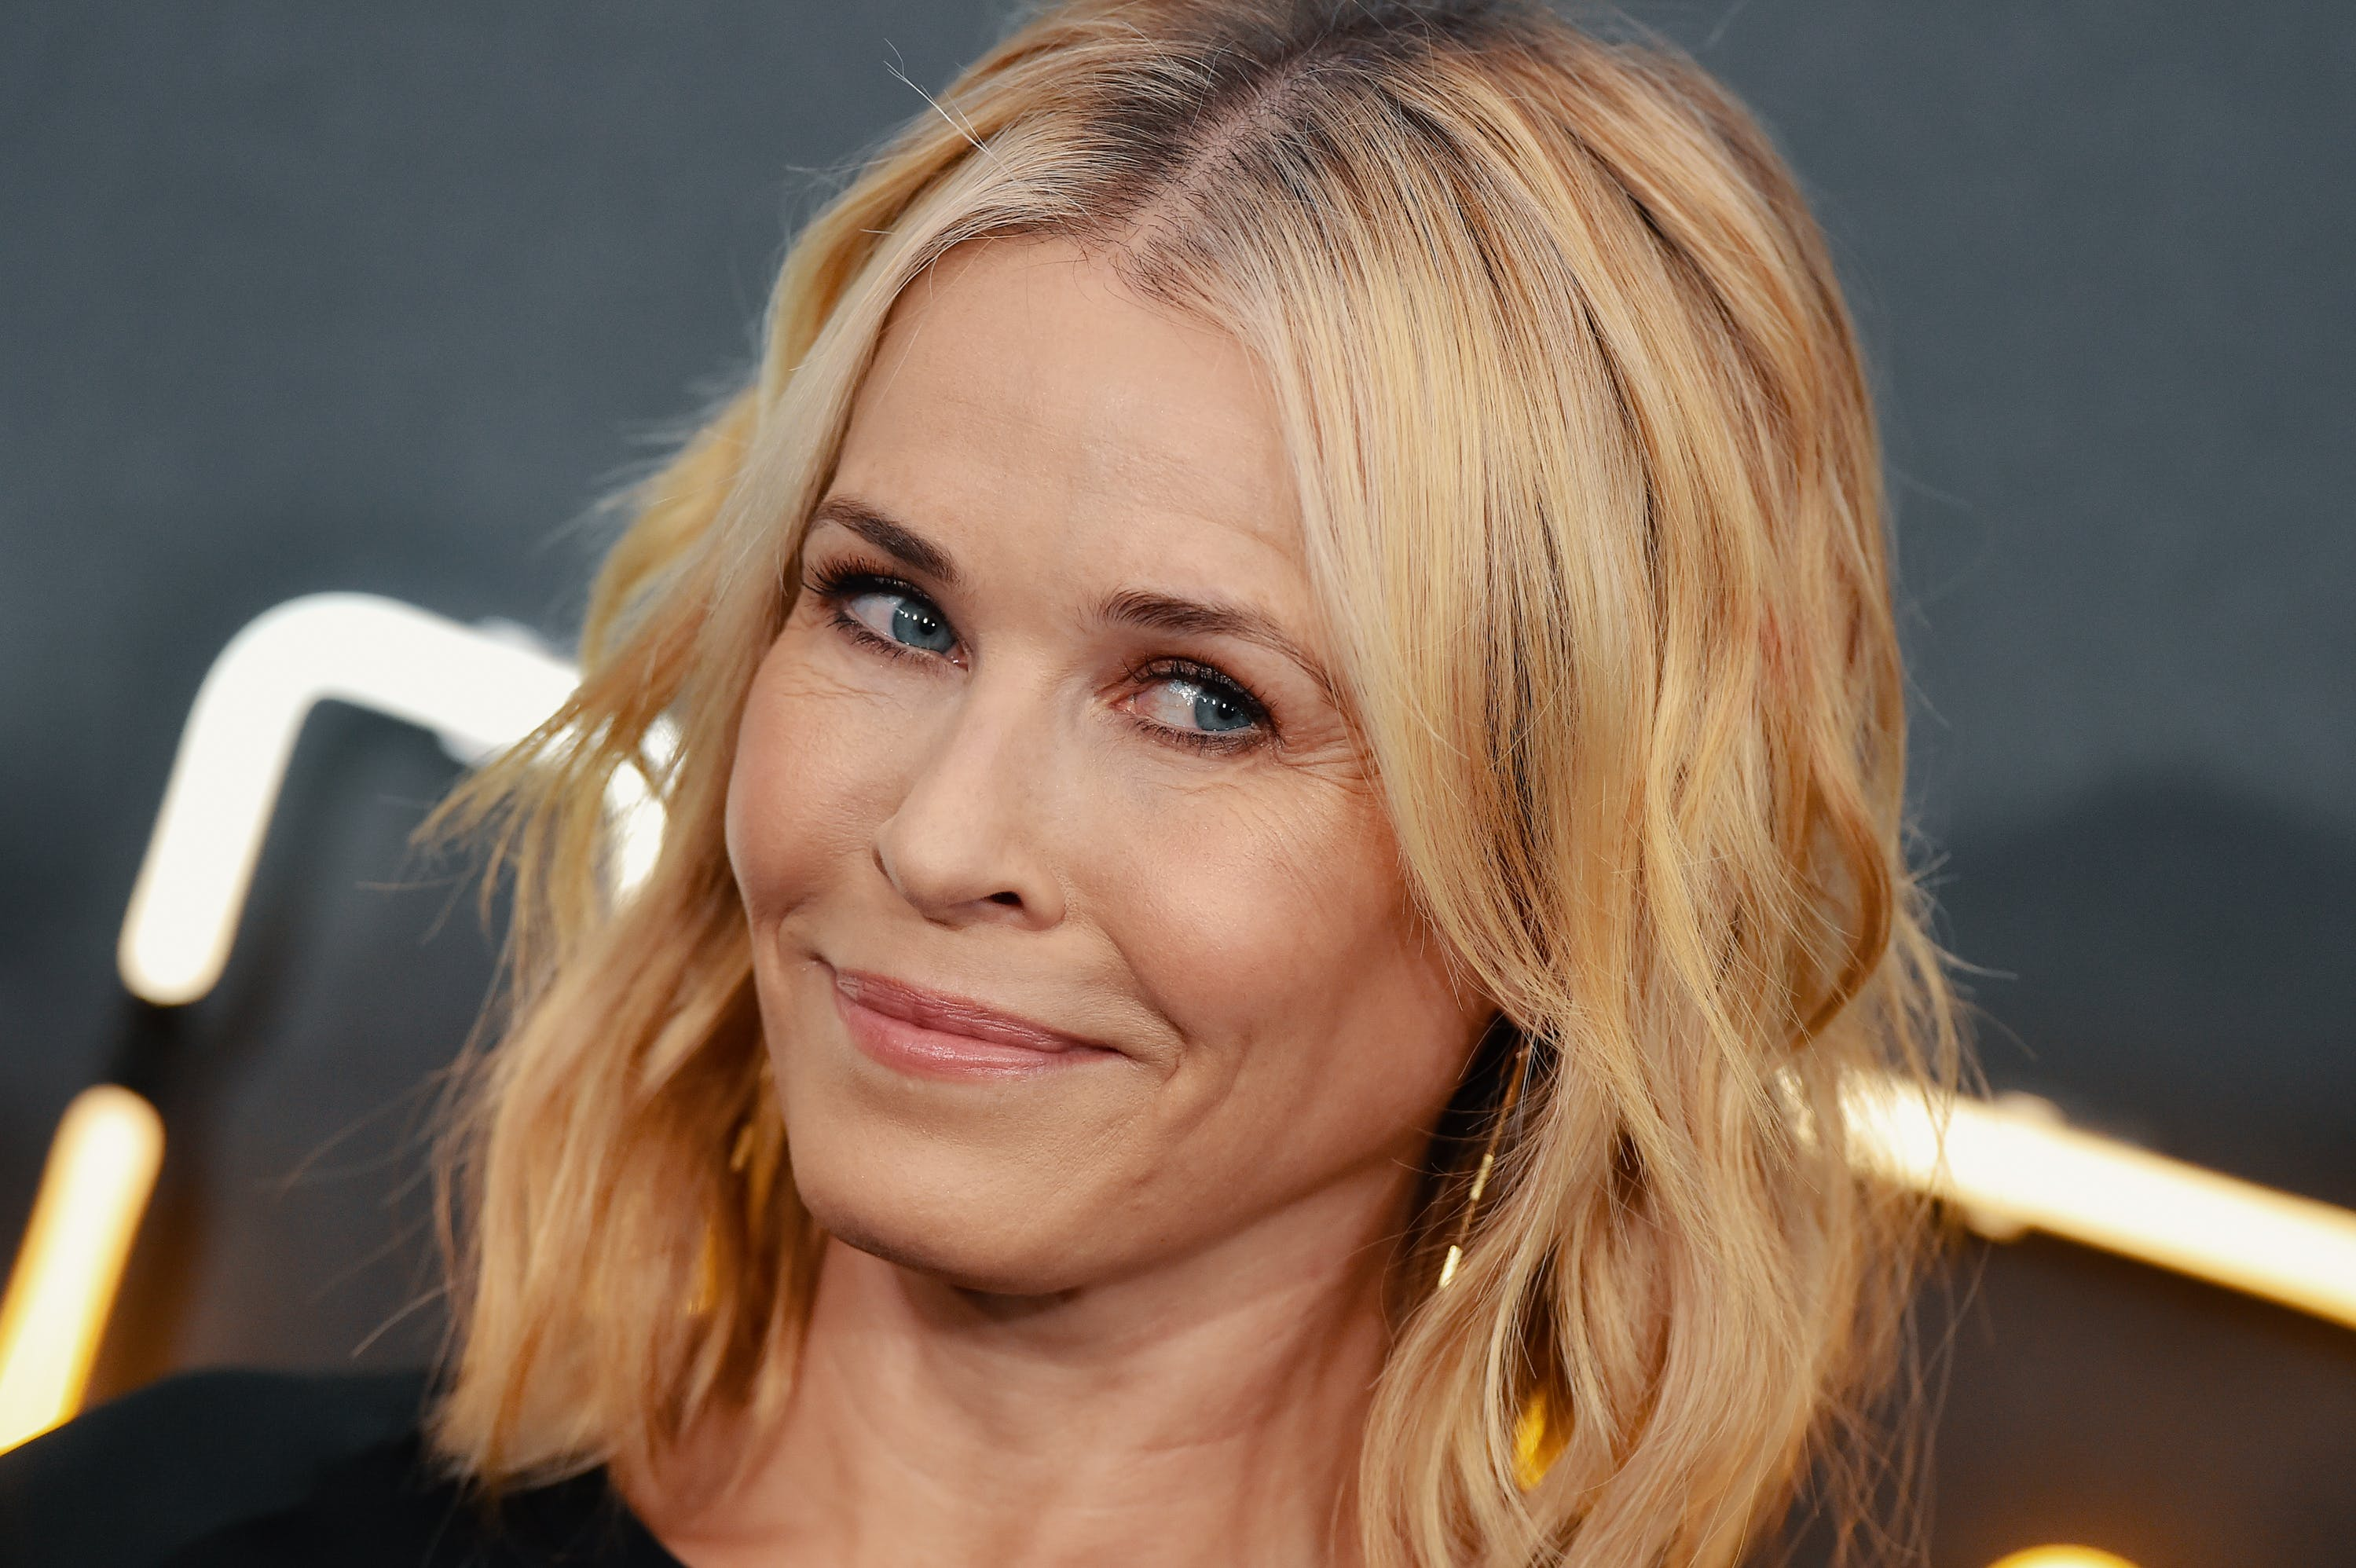 Chelsea Handler is trying to find a strain that eliminates the munchies for women.